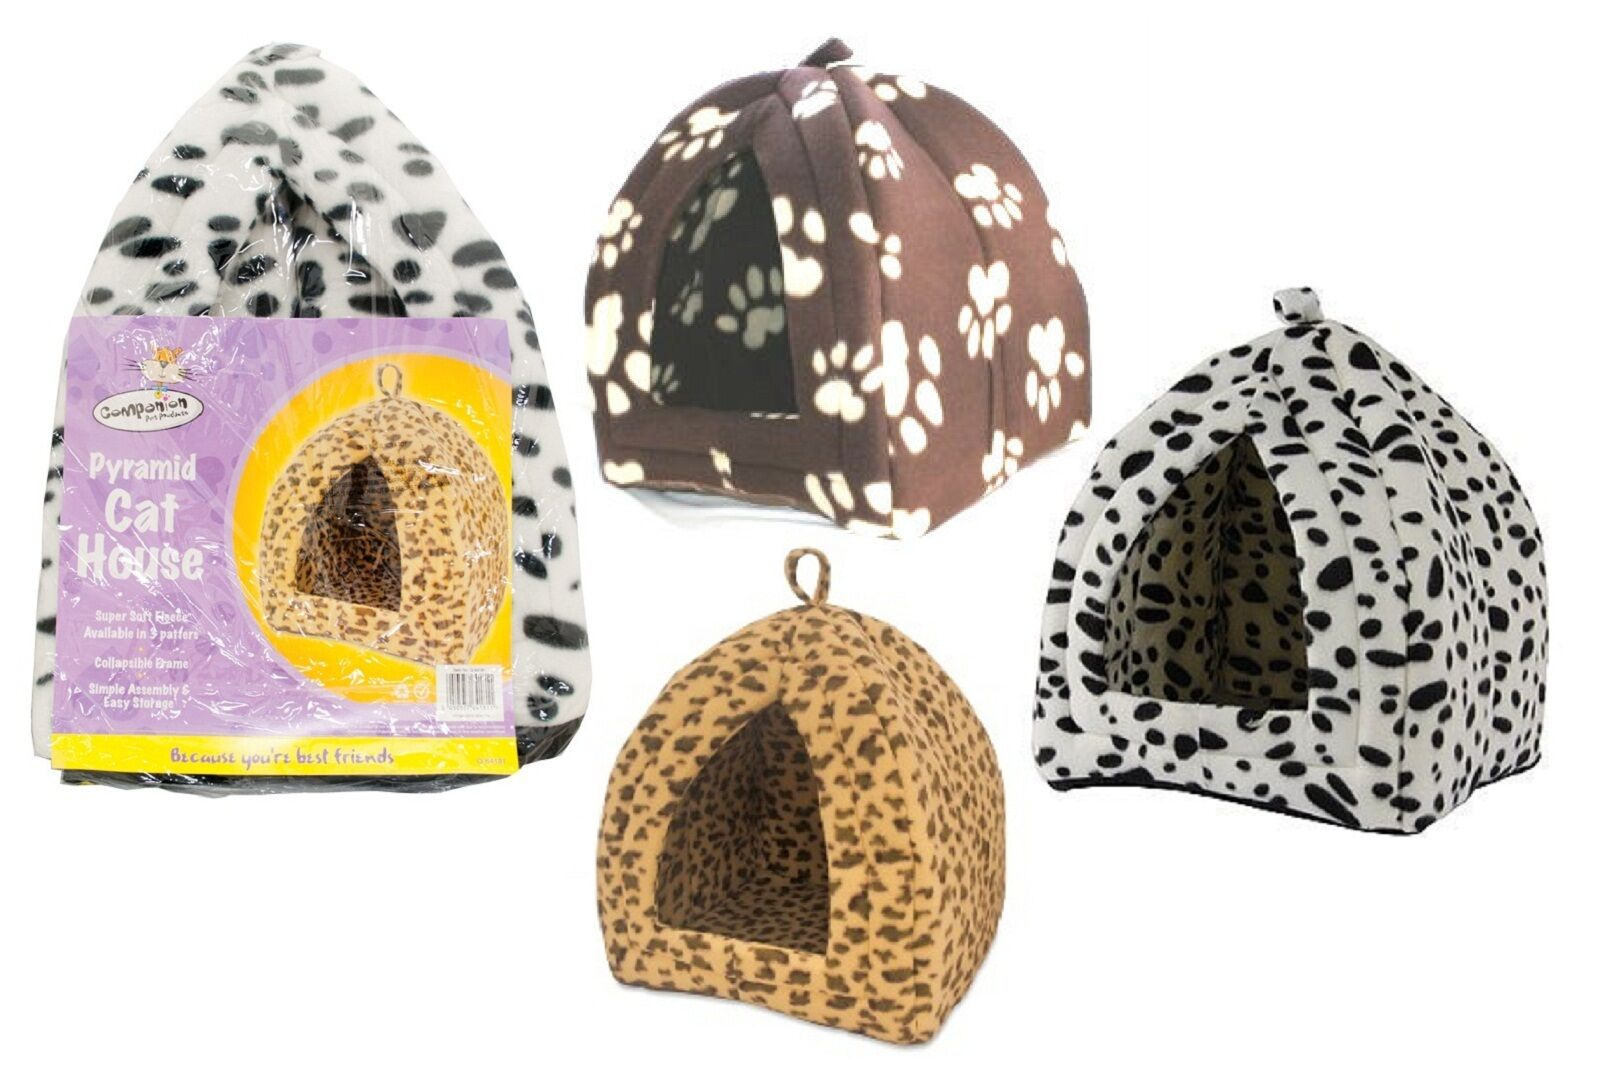 Pyramid Cat House Igloo Pyramid Soft Cat Bed For Rabbits Guinea Pigs Small Pets